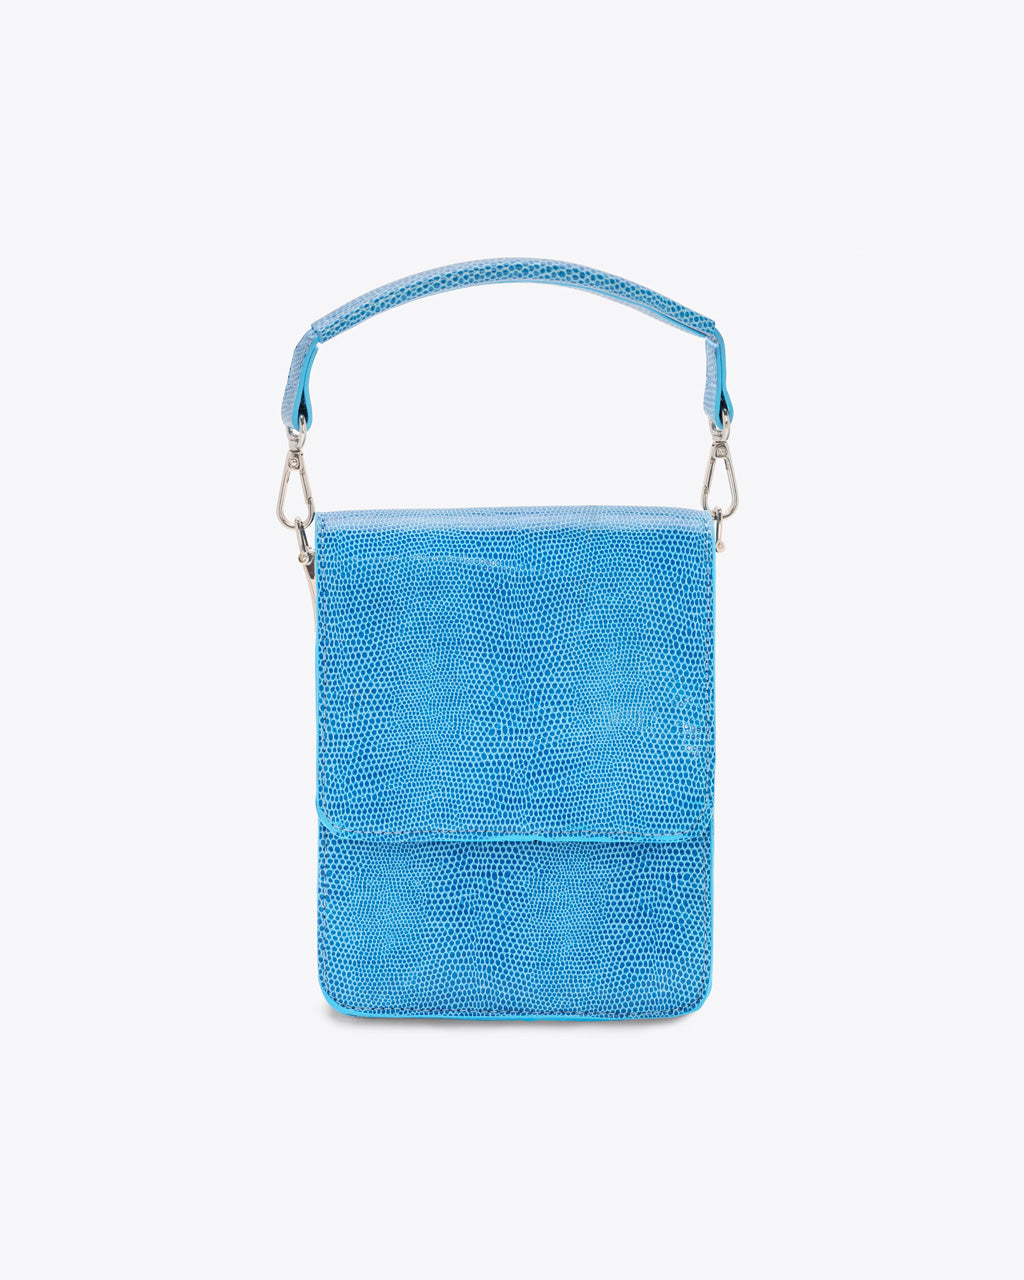 blue mini purse featuring a reptile texture shown with just top handle